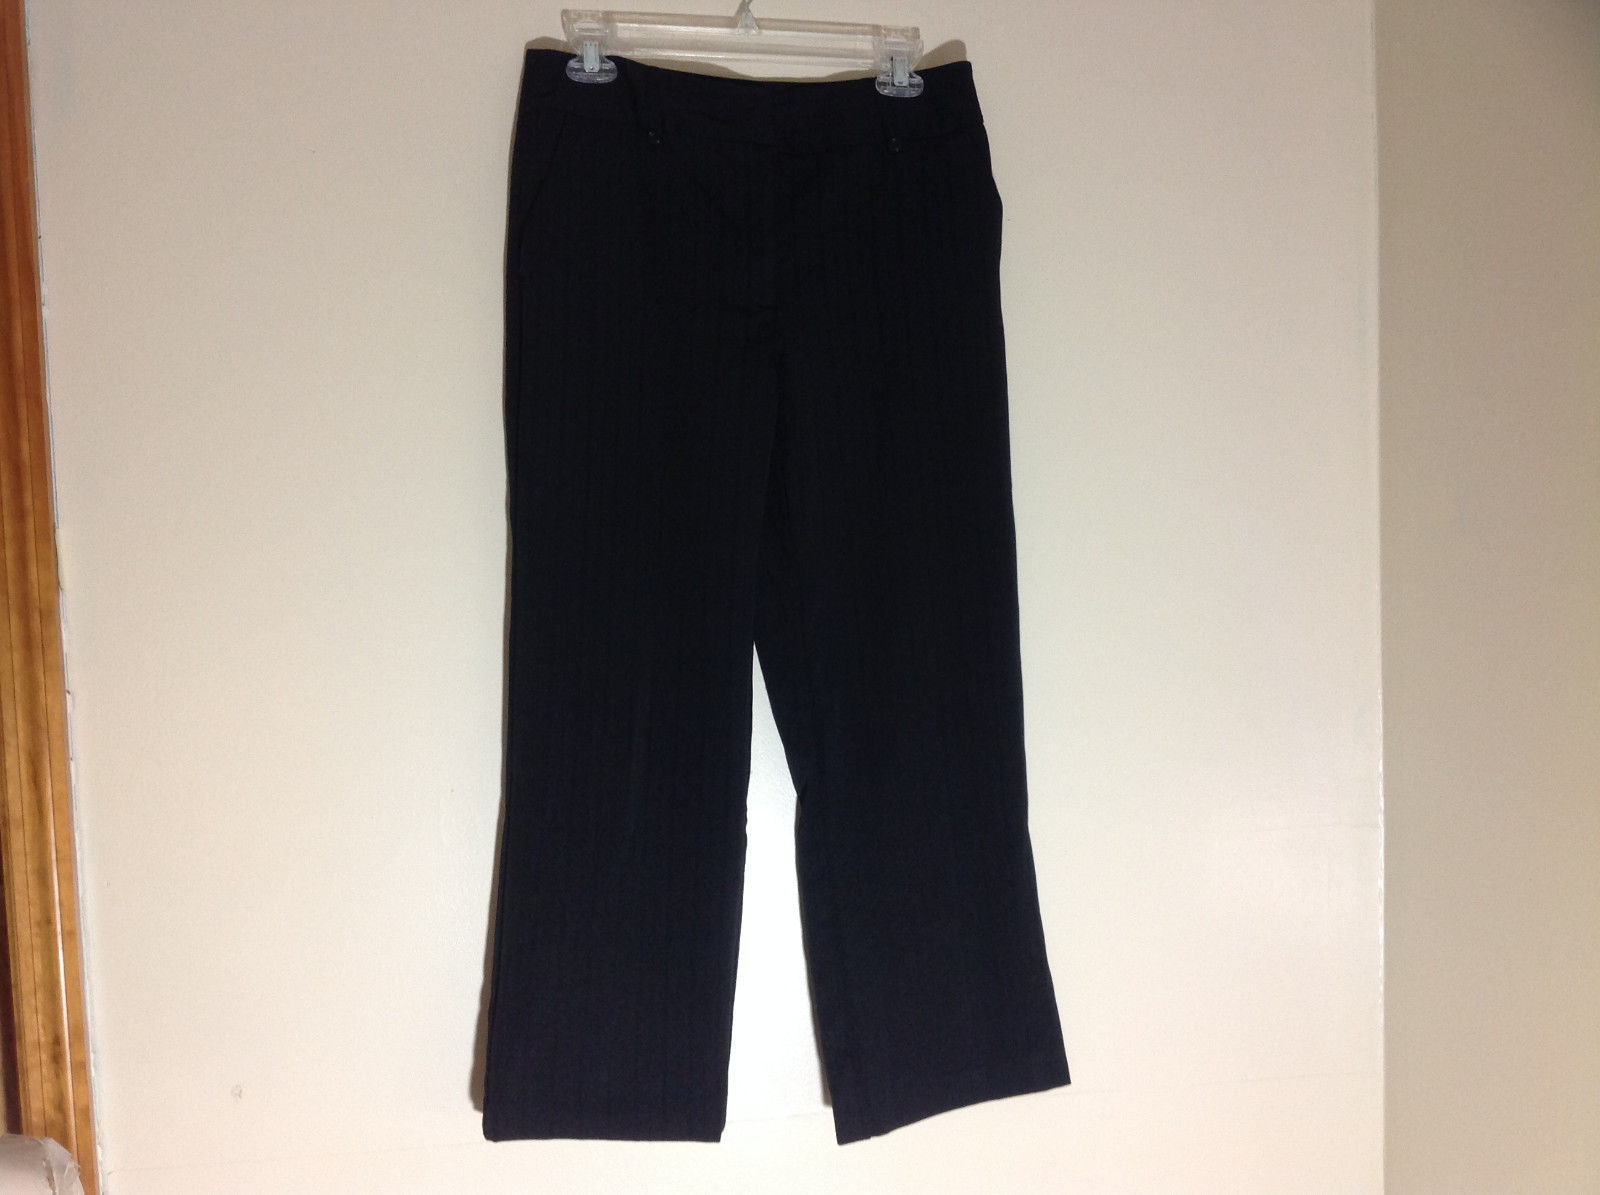 George Stretch Boys Black Pinstriped Dress Pants Front Pockets Size 10 Average